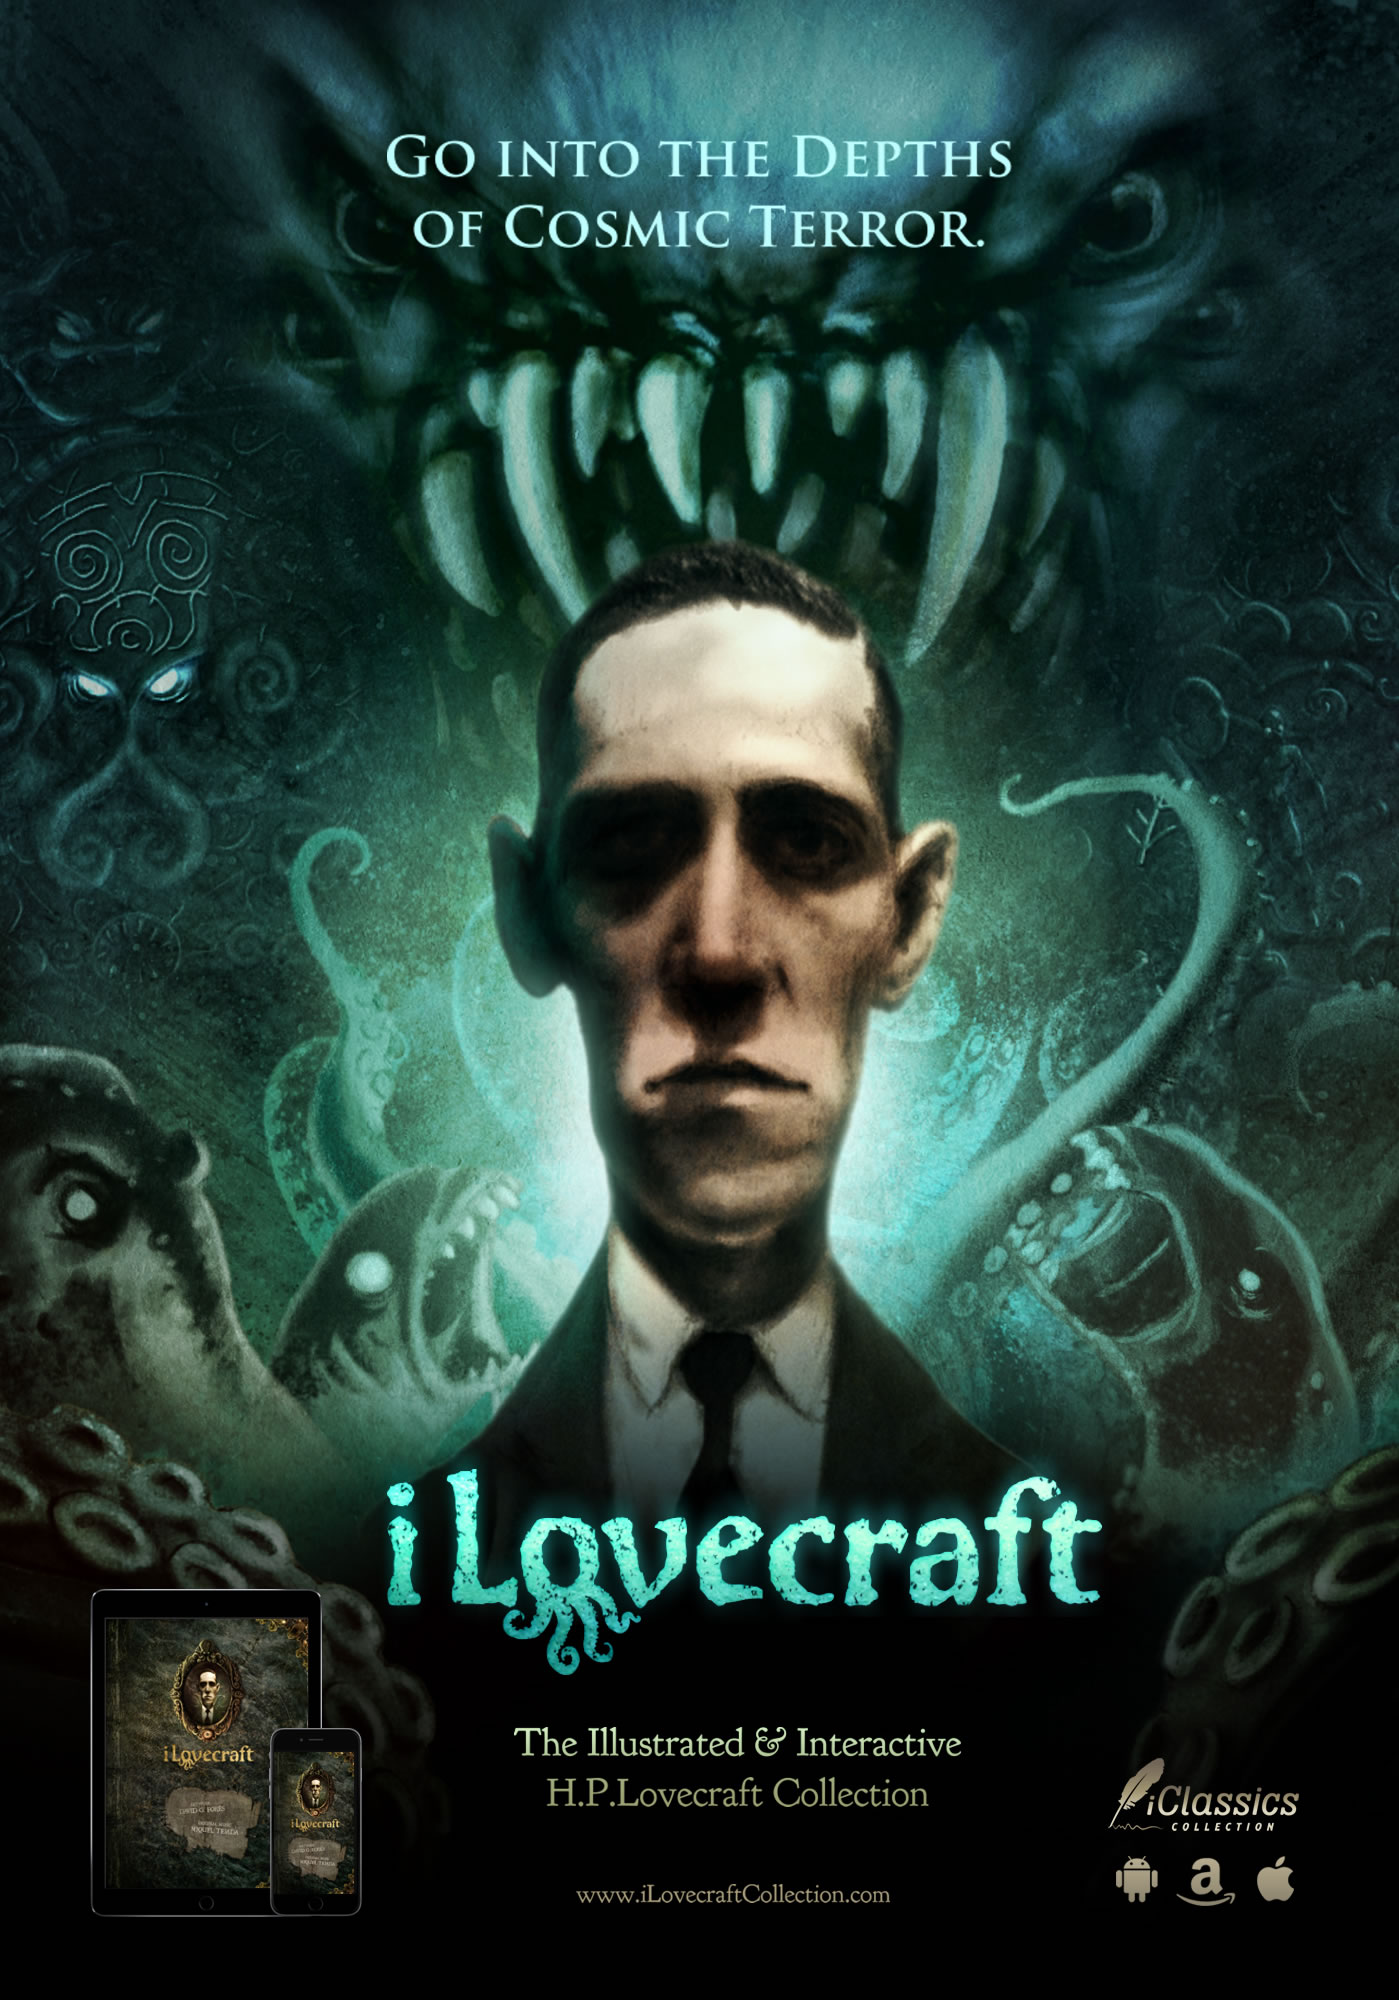 iLovecraft: The illustrated and interactive H.P. Lovecraft collection